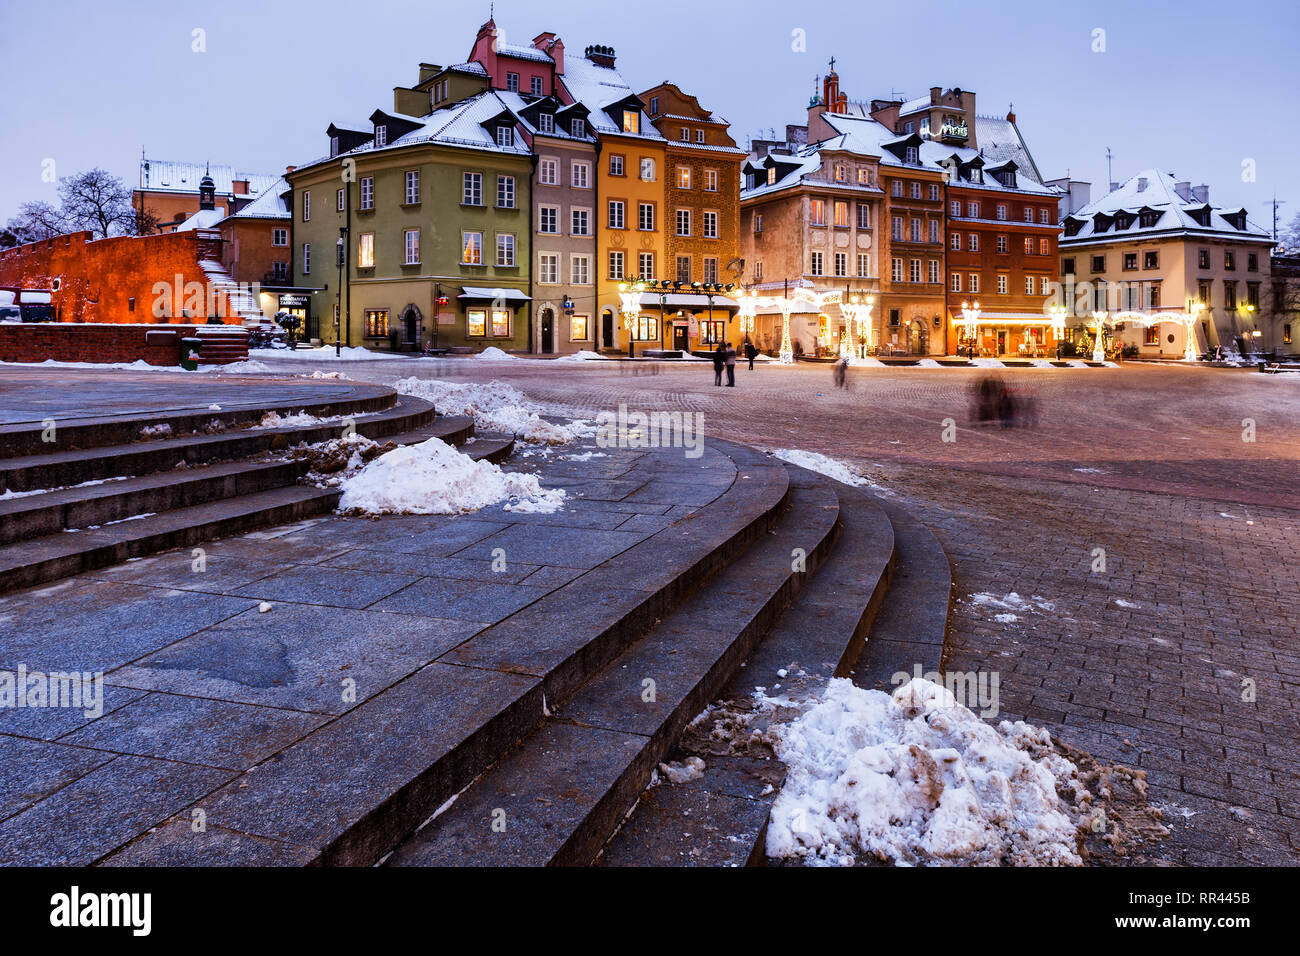 Poland, city of Warsaw in the evening, tenement houses on Castle Square in Old Town, winter time. - Stock Image